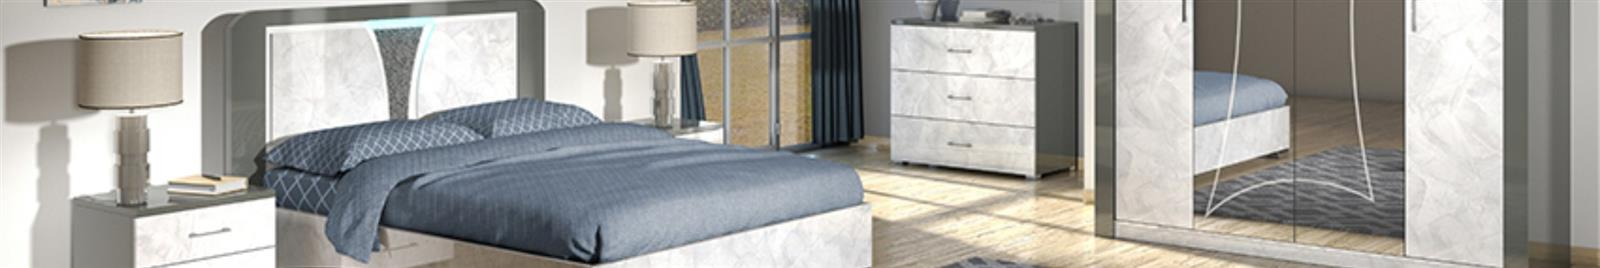 Olivia - Modern Bedroom Furniture